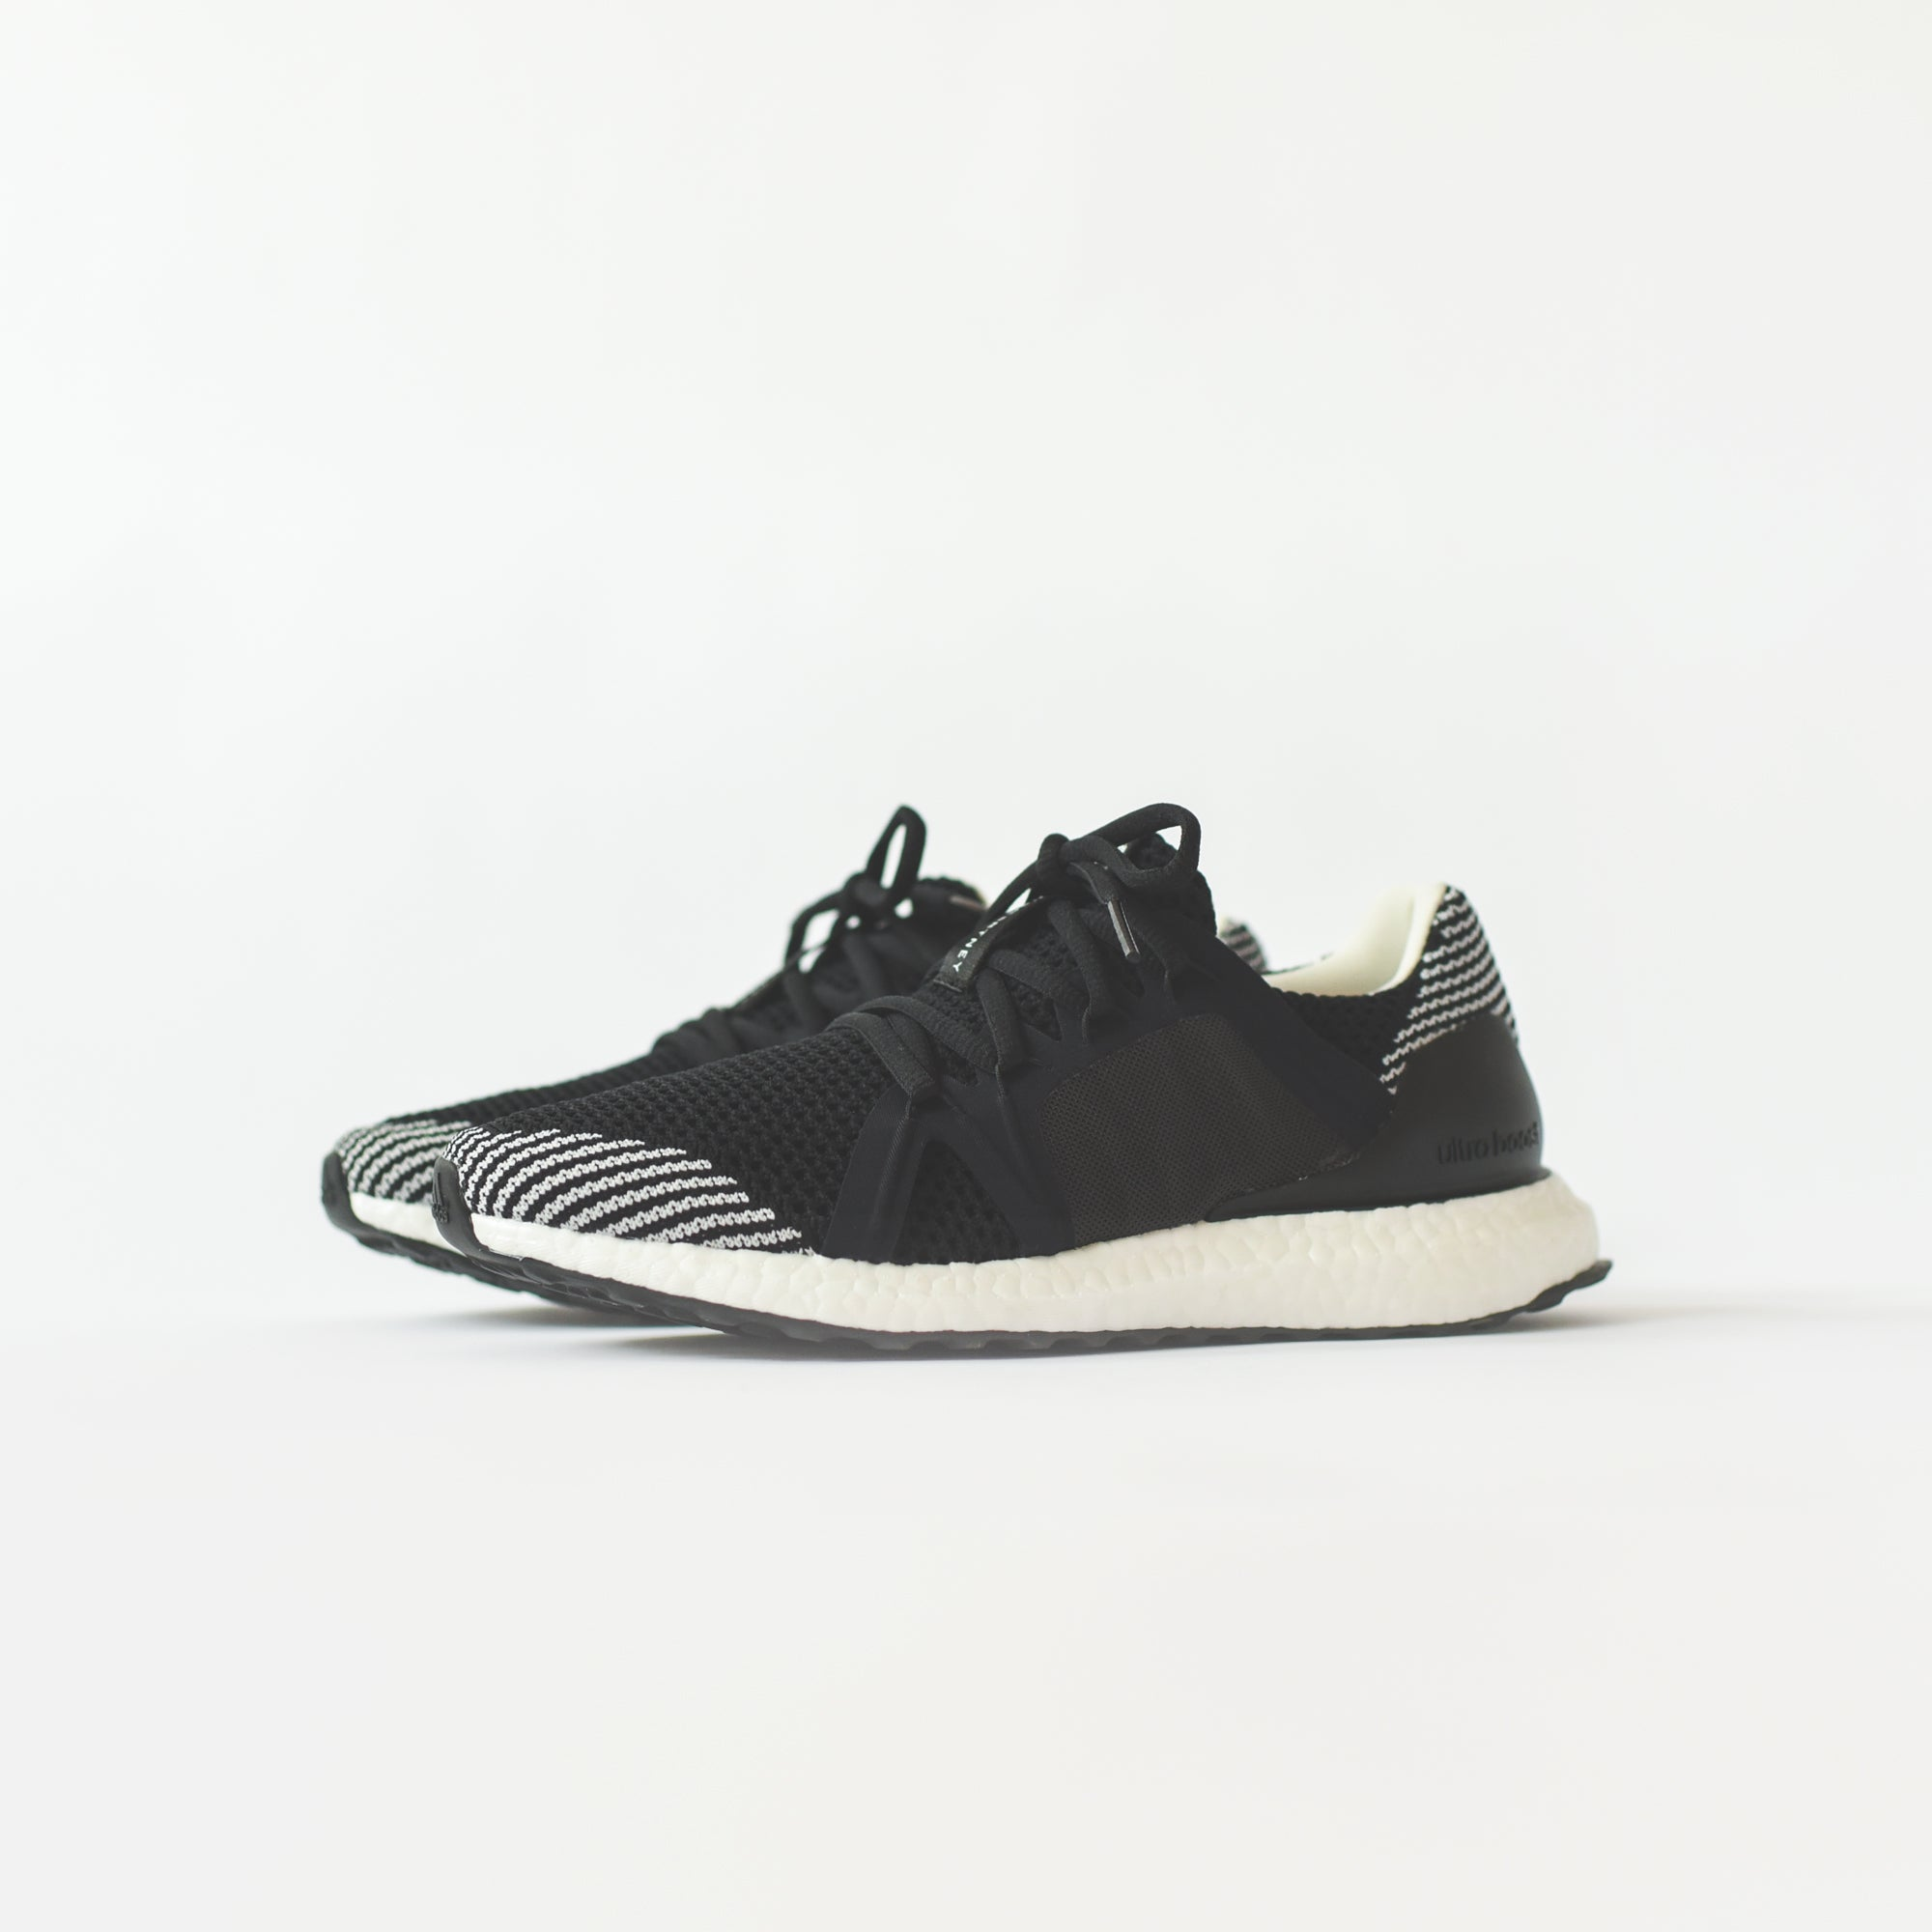 e11855440a819 adidas by Stella McCartney WMNS UltraBOOST - Black   White   Granite ...